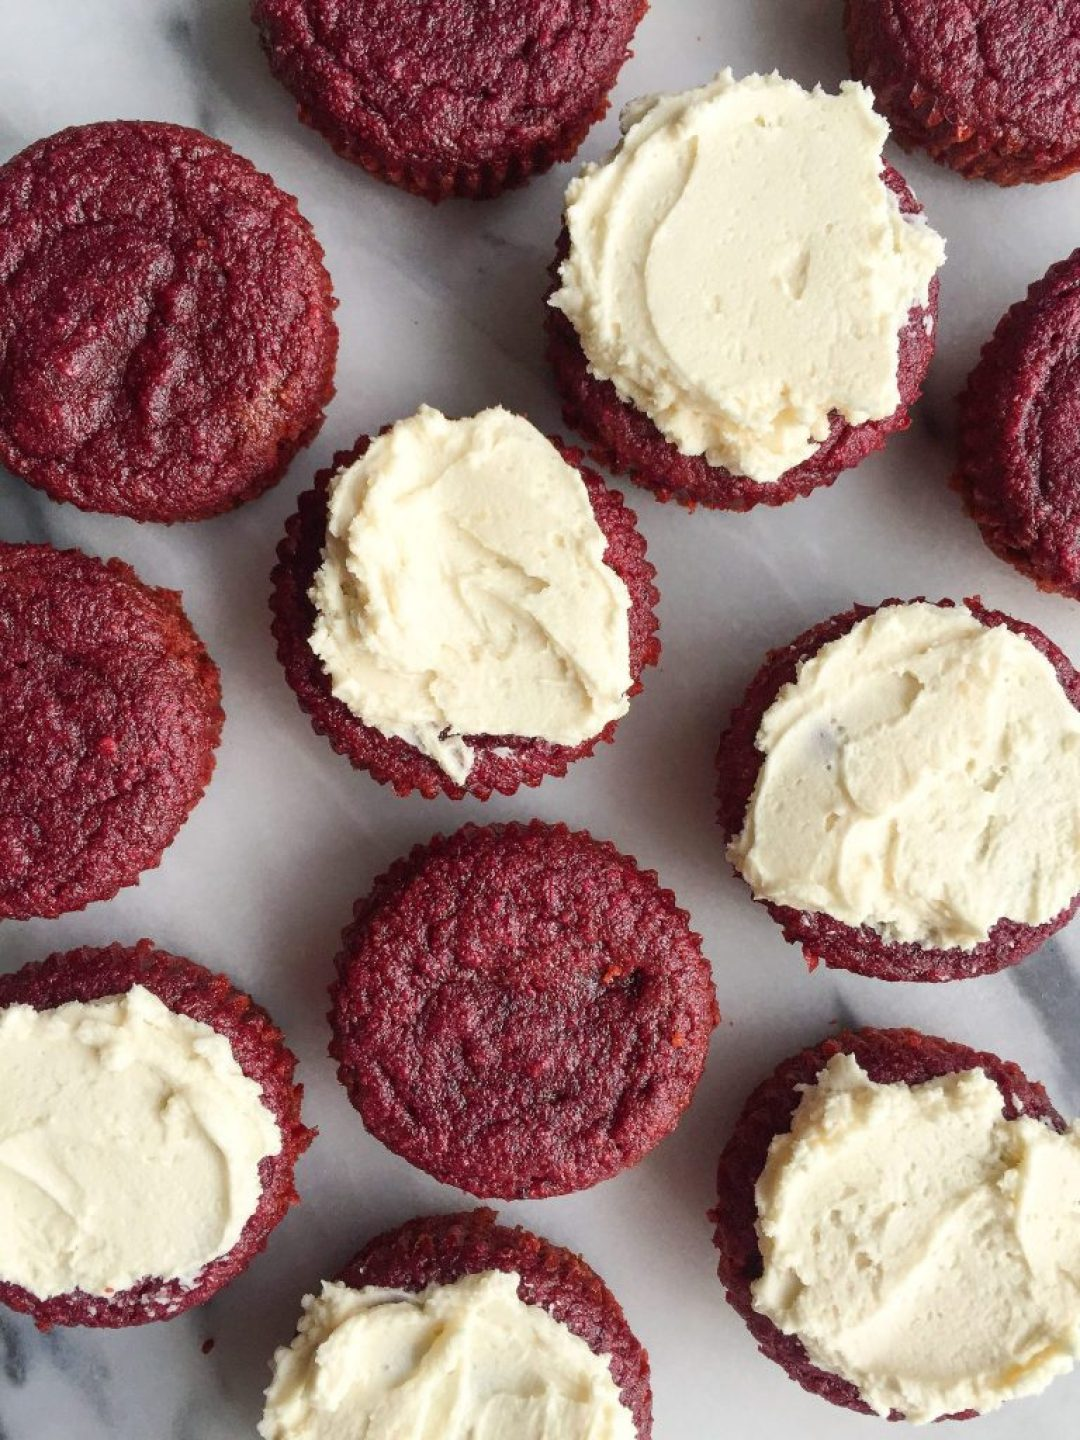 Healthy Homemade Red Velvet Cupcakes made grain, gluten & dairy-free!